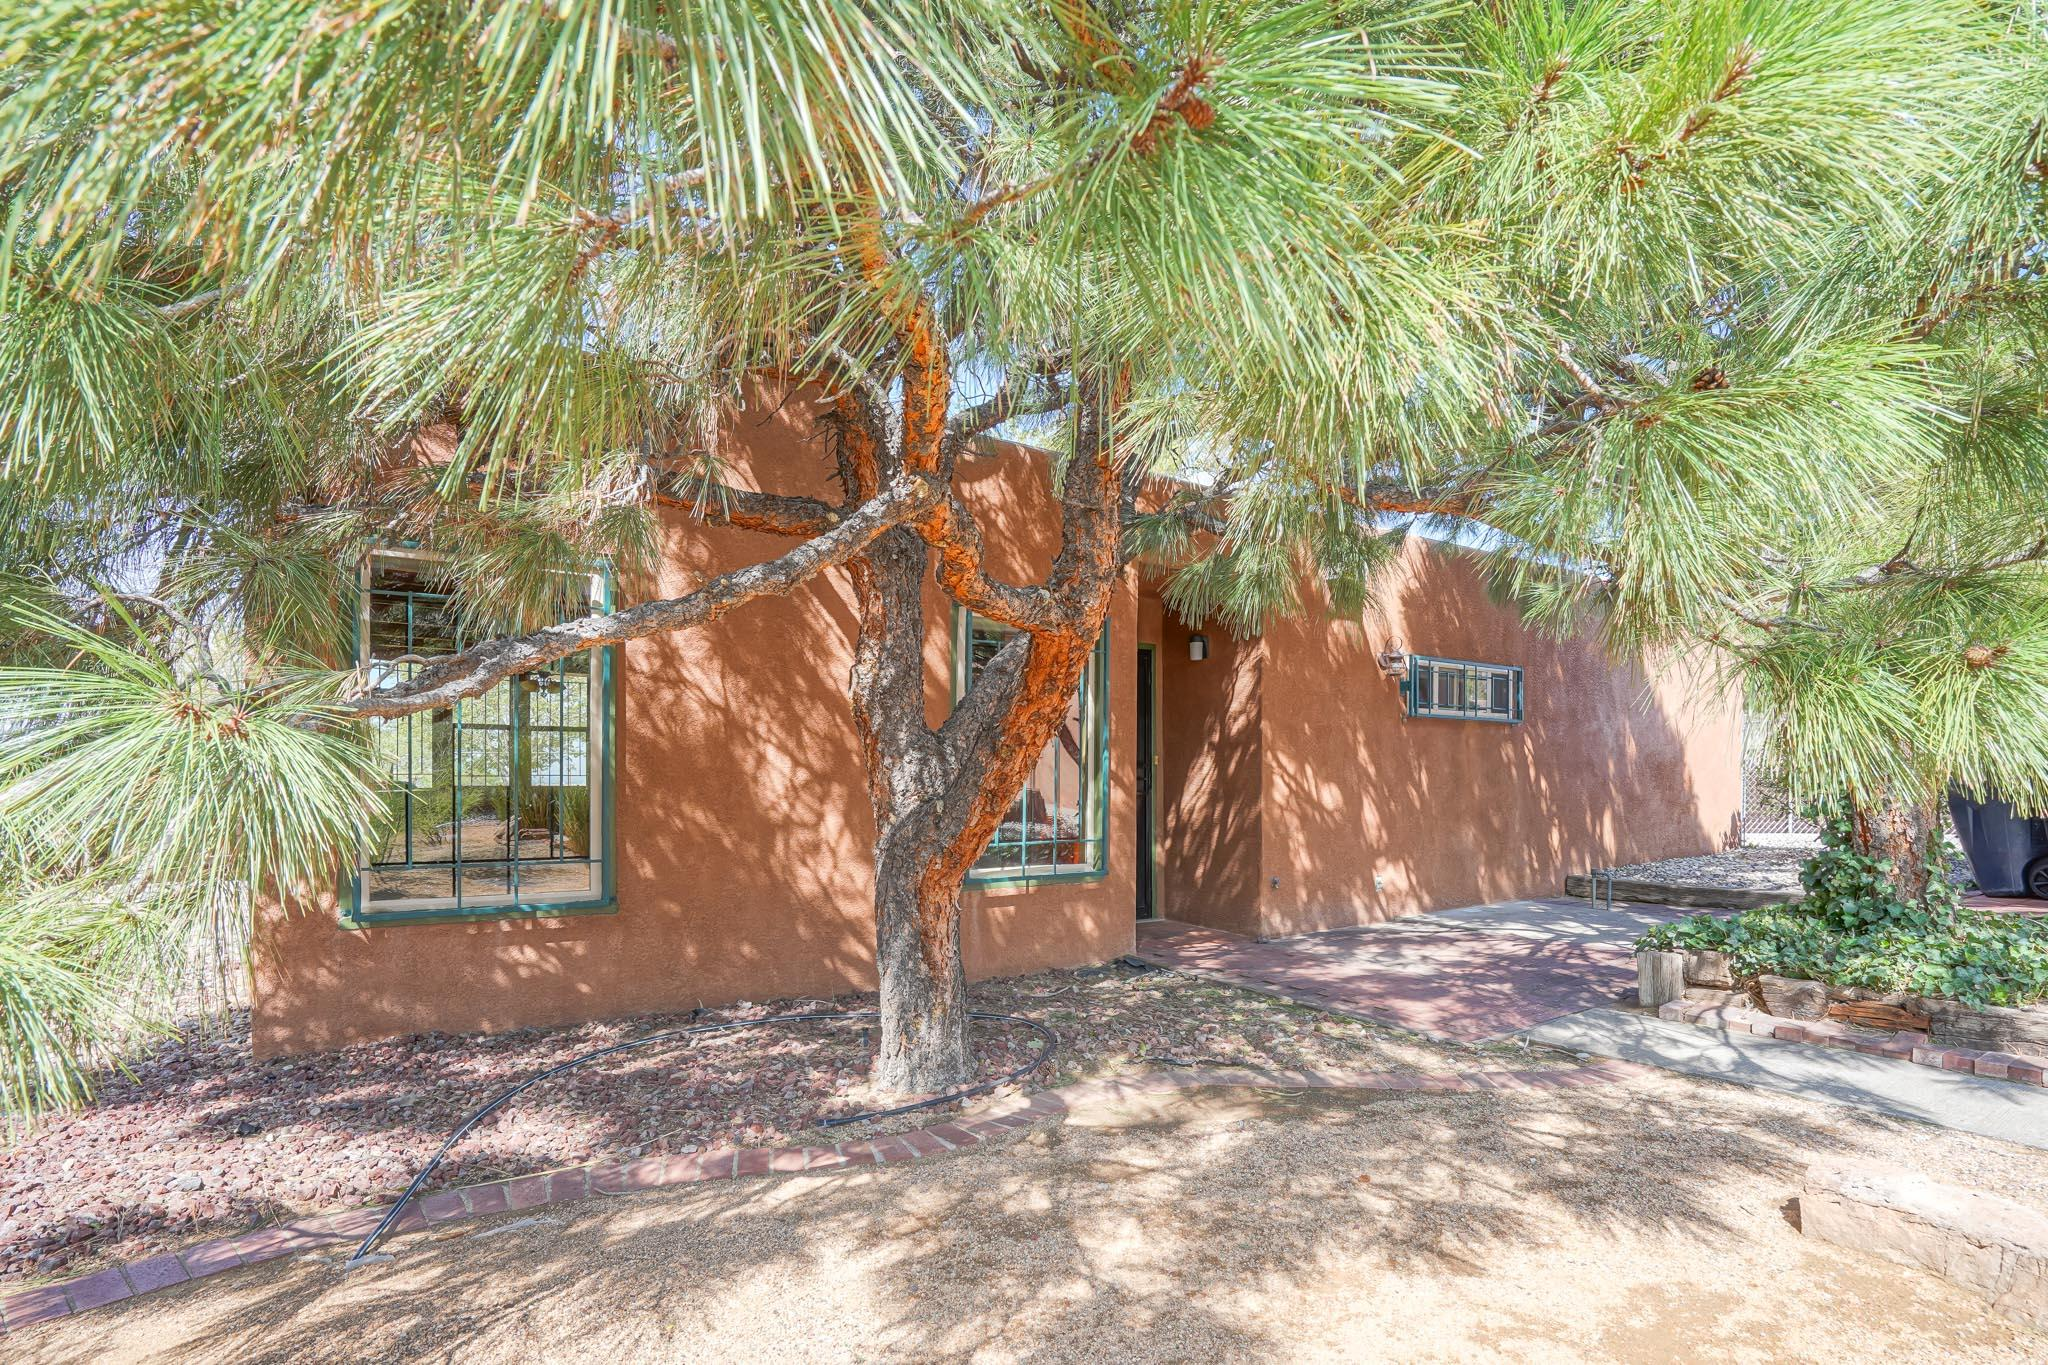 This charming one-story home in foothills area is move-in ready and features plenty of natural light, numerous updates, and views of the Sandias and city lights.Enjoy easy access to I-40 and nearby restaurants, groceries stores, shopping centers, and foothill trails. This home has beautiful beamed ceilings in the main living area with tile and brick flooring for easy maintenance. The large master bedroom has 2 closets and a dressing area.Refrigerated air will keep you cool all summer and double pane windows make the home energy efficient. Other nice amenities are a detached one car garage, tankless water heater, wood stove insert, TPO roof (2017) with transferable warranty. Front and back yards are nicely landscaped and well maintained.Home & Termite inspections, Repairs are complete